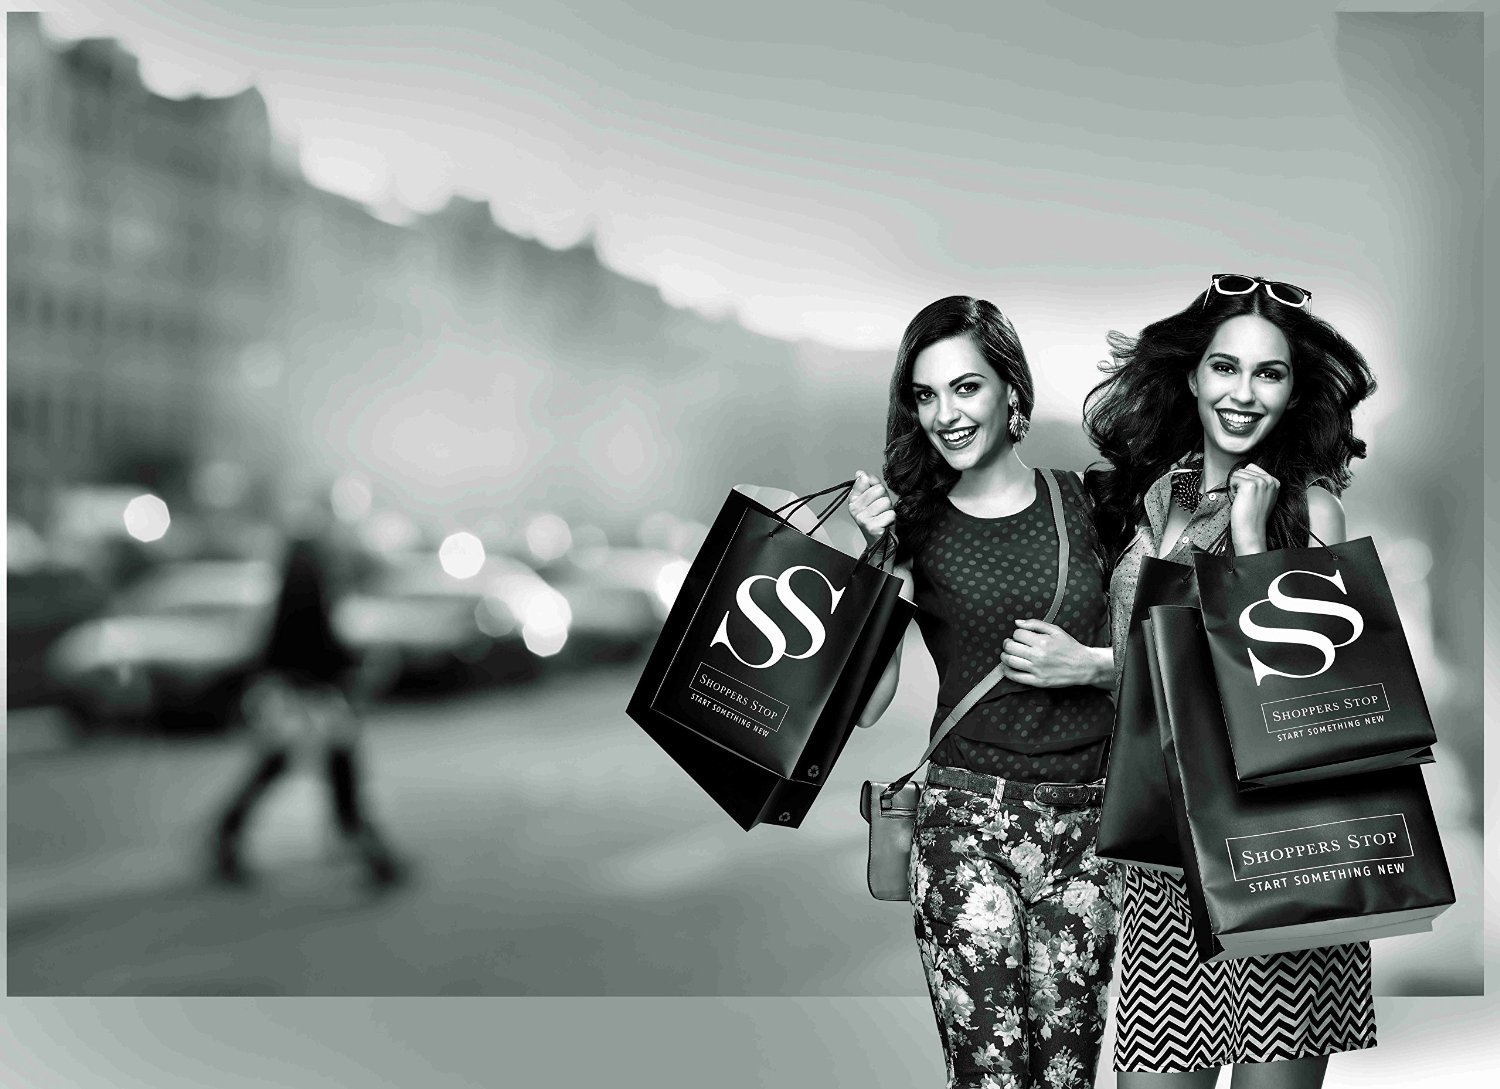 Only, Shoppers Stop,Tommy Hilfiger, etc in mid-season sale mode